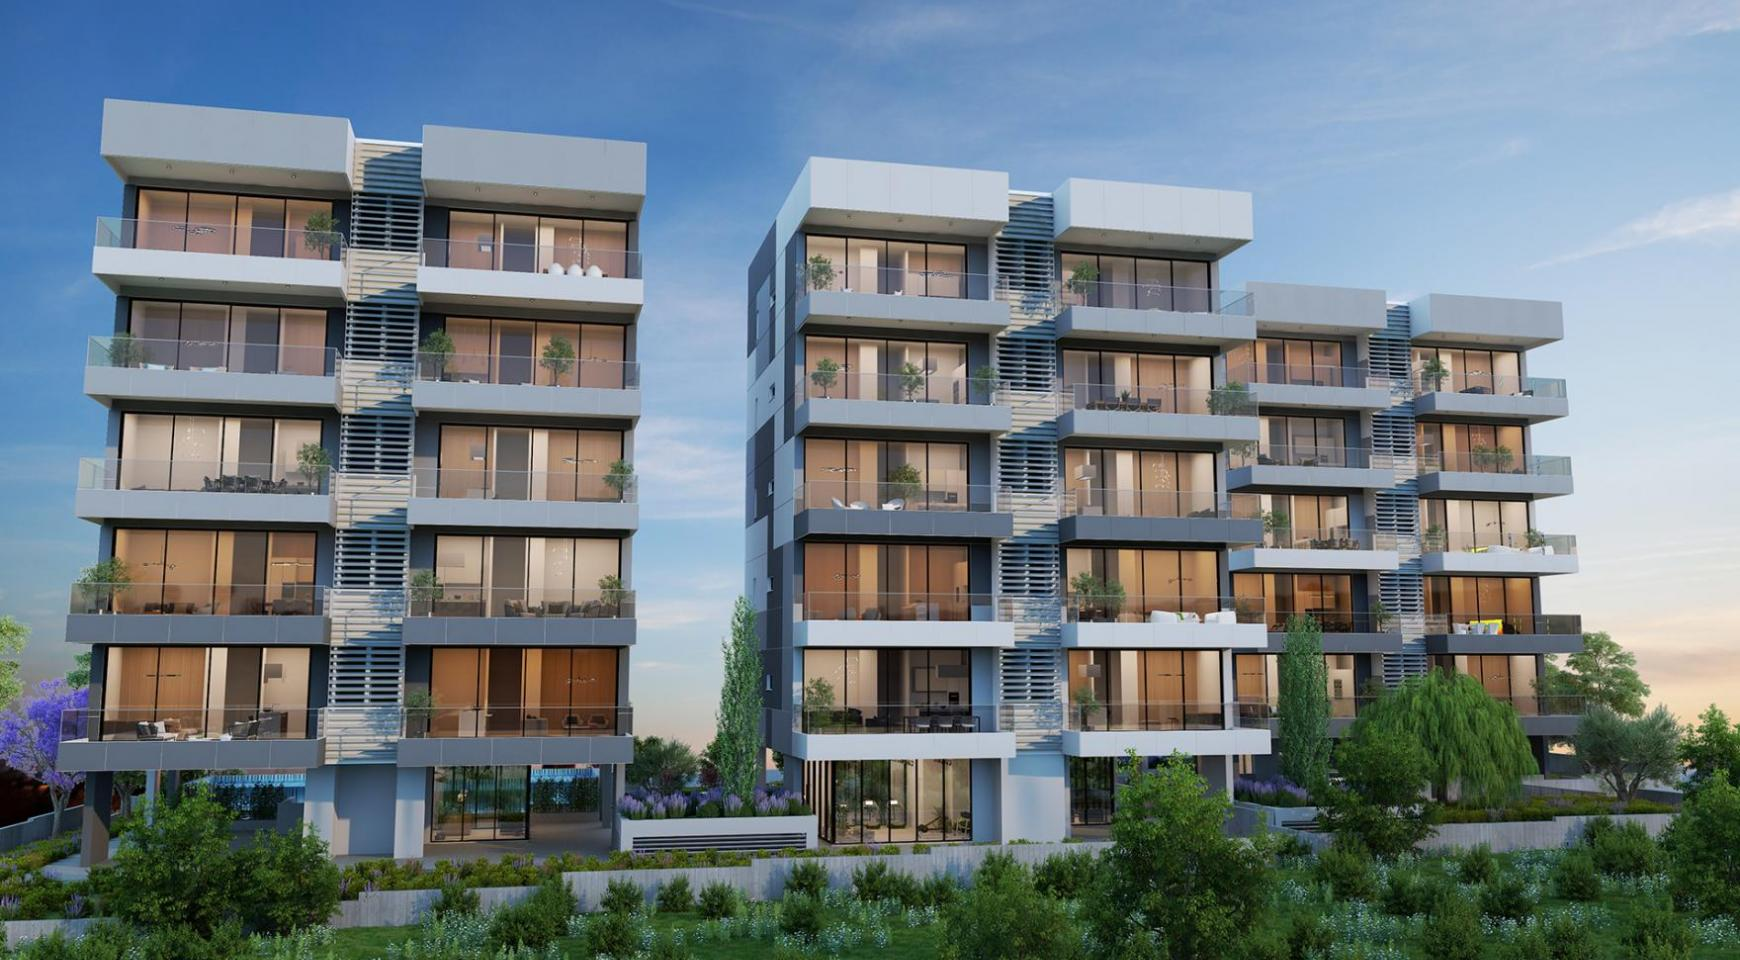 Urban City Residences, Block B. New Spacious 3 Bedroom Apartment 201 in the City Centre - 23